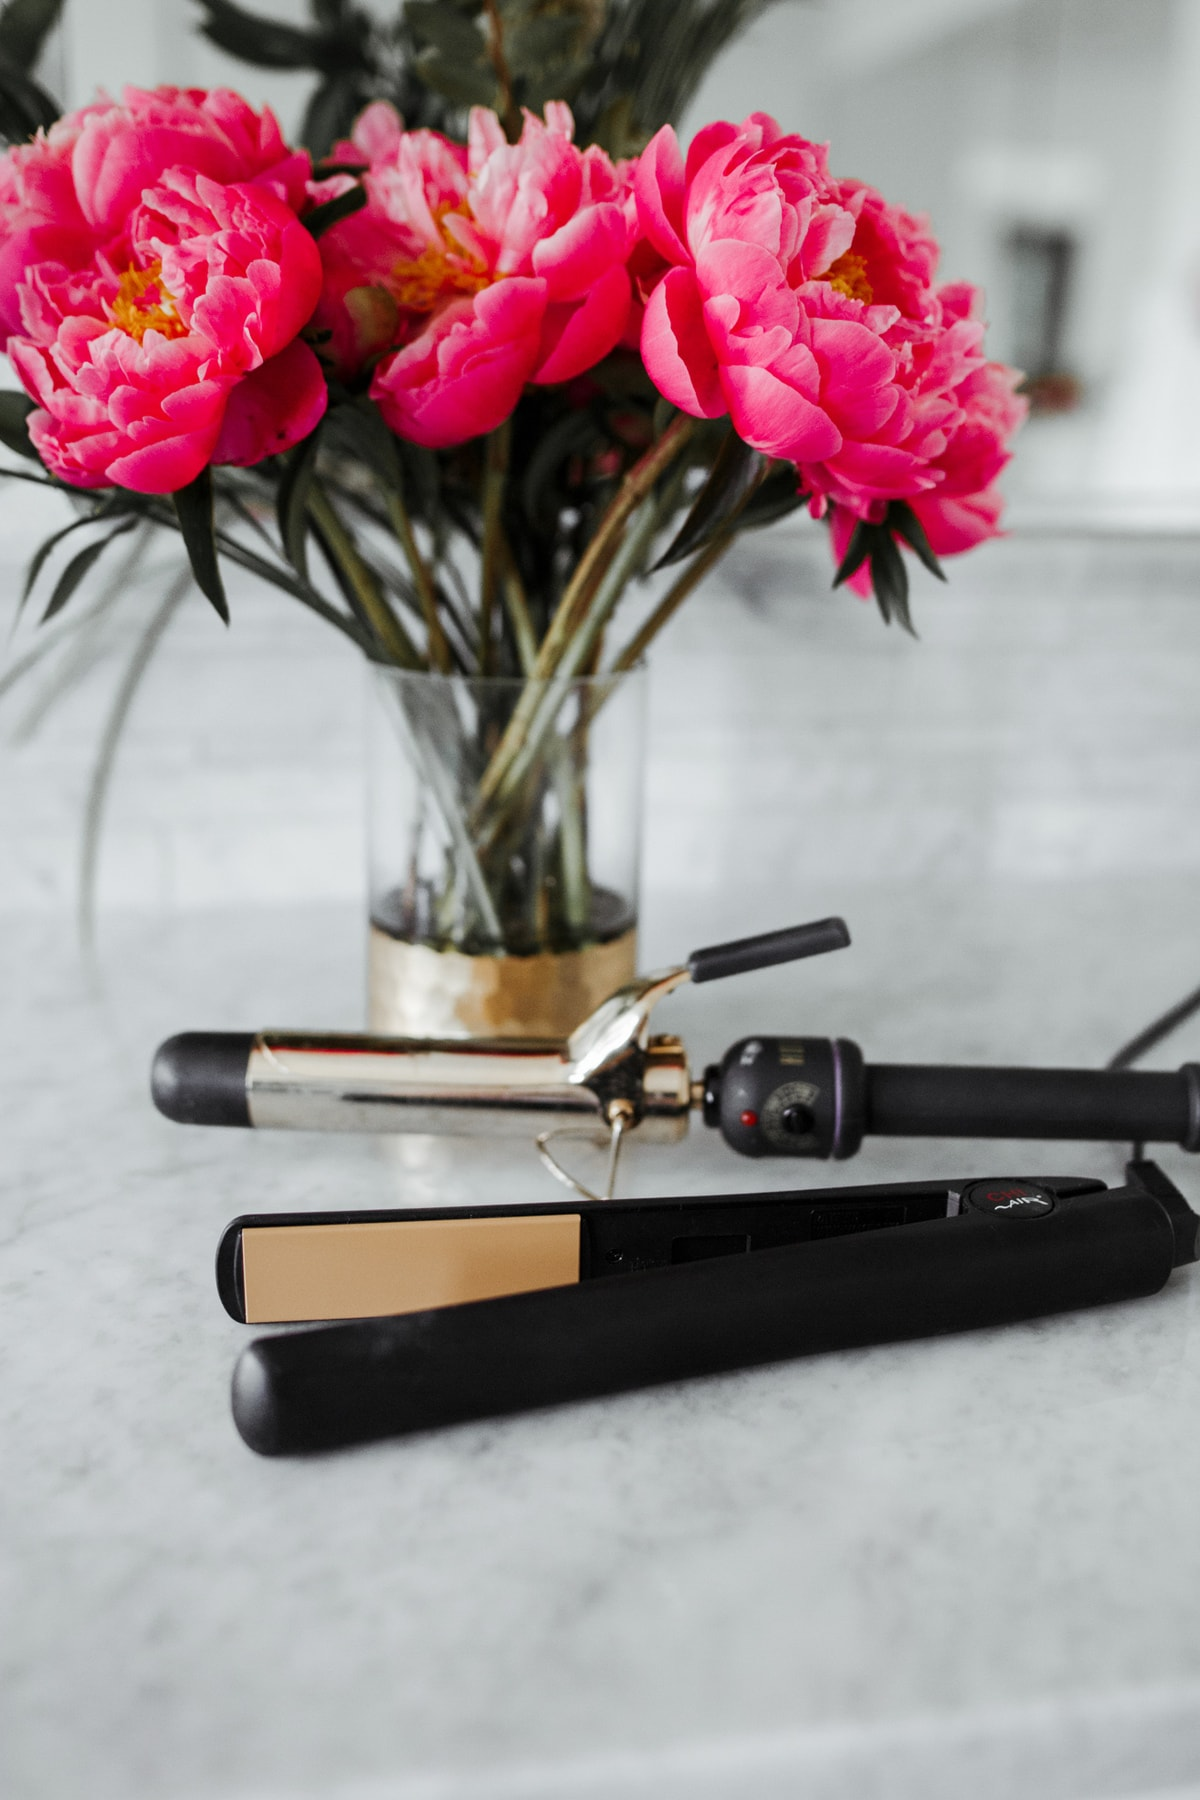 Best Gift for mother's day Gold Curling Iron